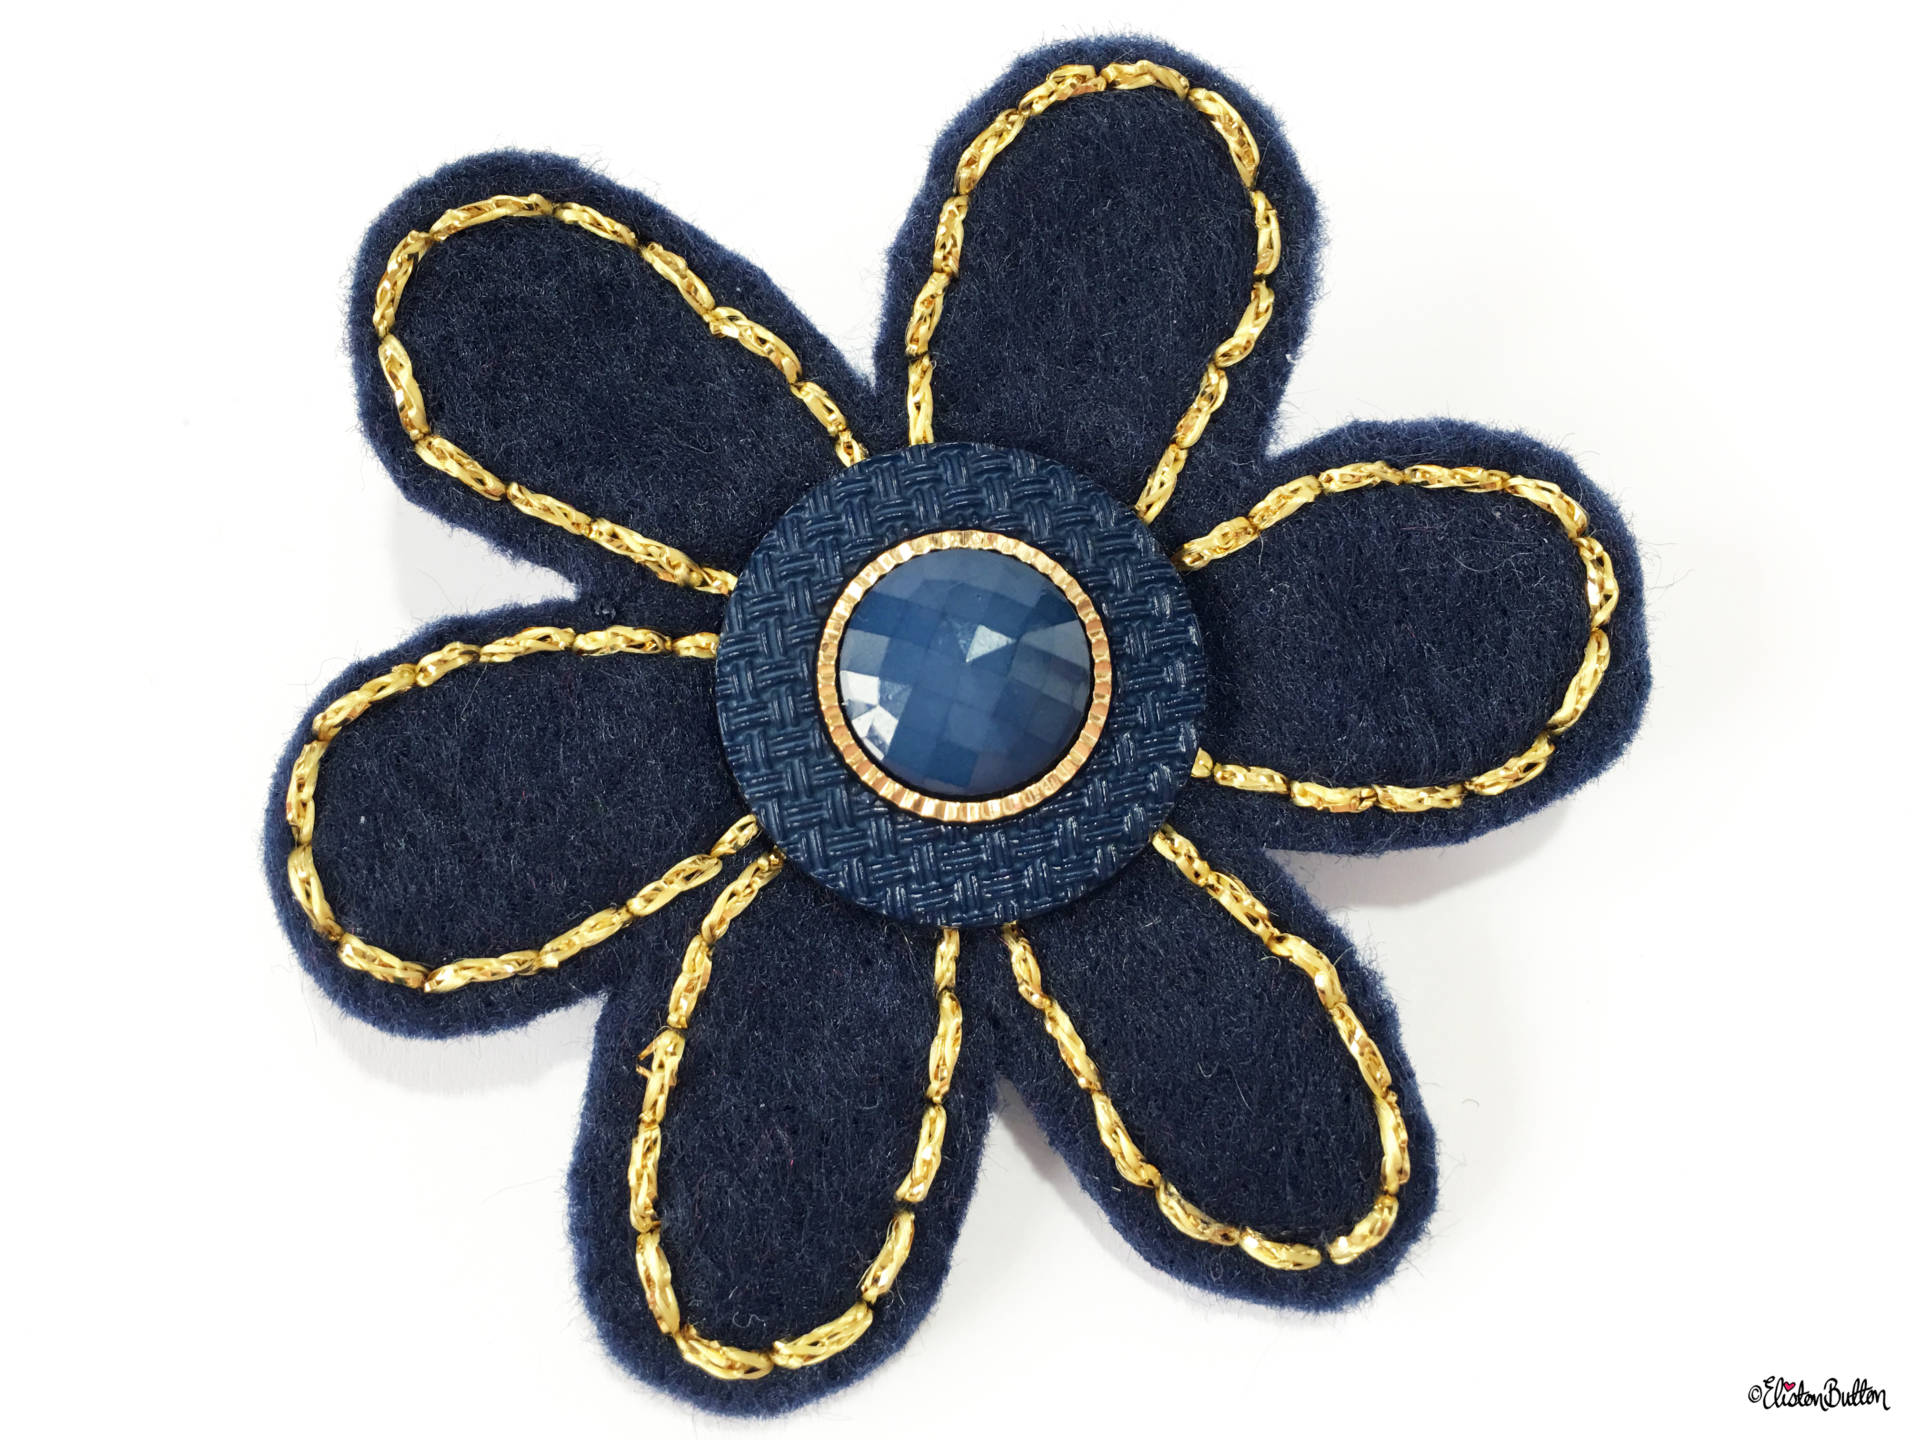 Navy Blue and Gold Embroidered Felt Flower Lapel Pin - Create 30 - No. 5, 6, & 7 - Embroidered Felt Lapel Pins at www.elistonbutton.com - Eliston Button - That Crafty Kid – Art, Design, Craft & Adventure.